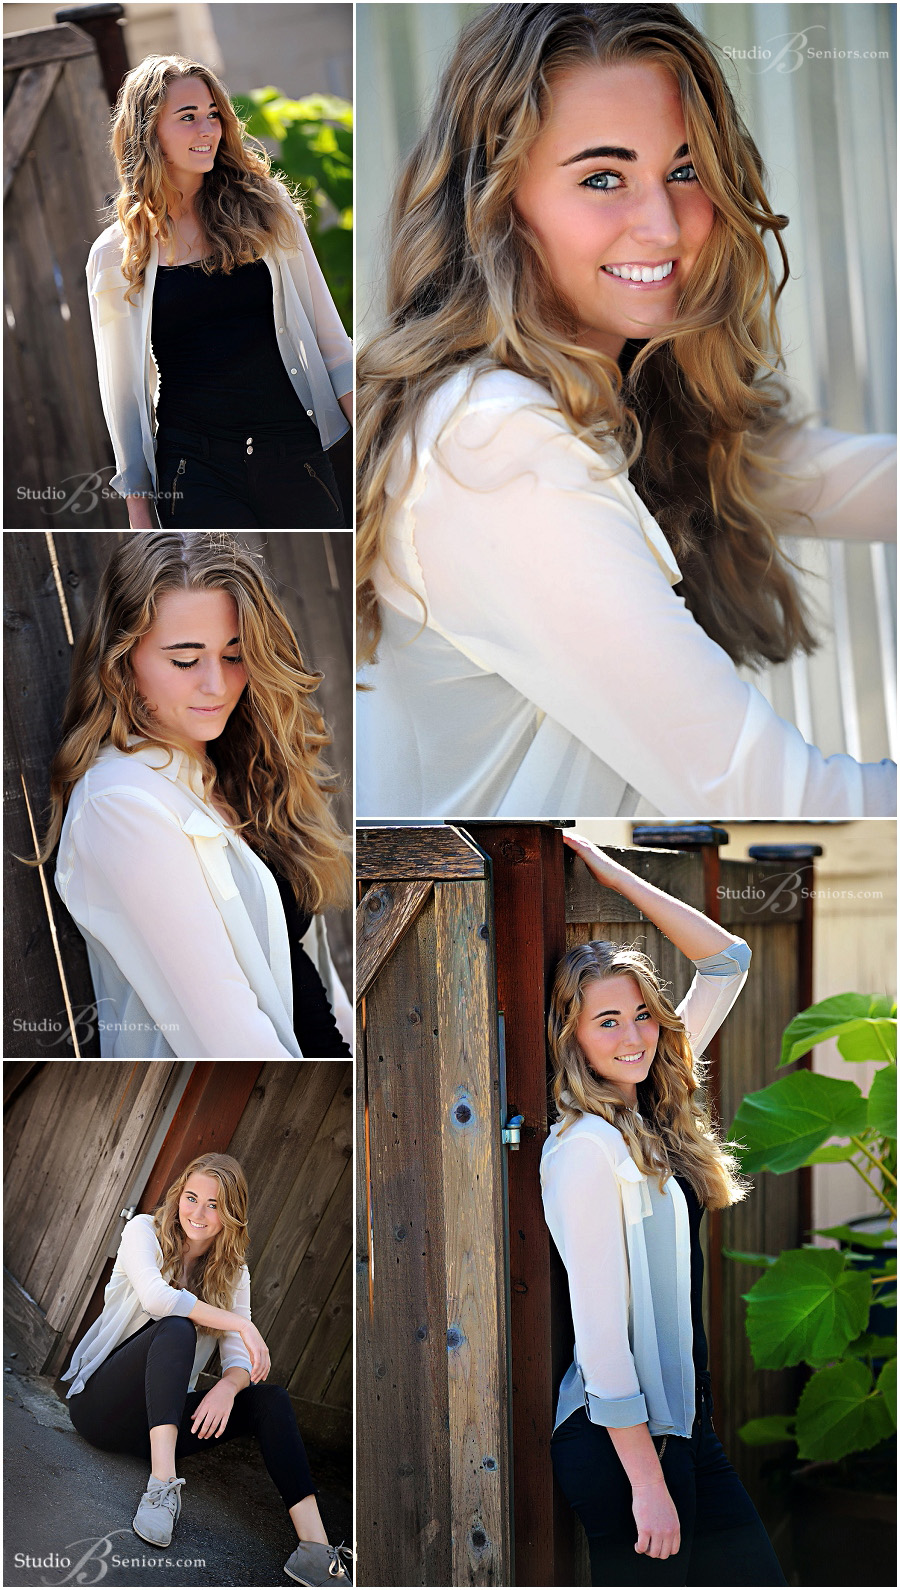 Best Outdoor senior pictures of Issaquah High School girl_Studio B Portraits_0050.jpg